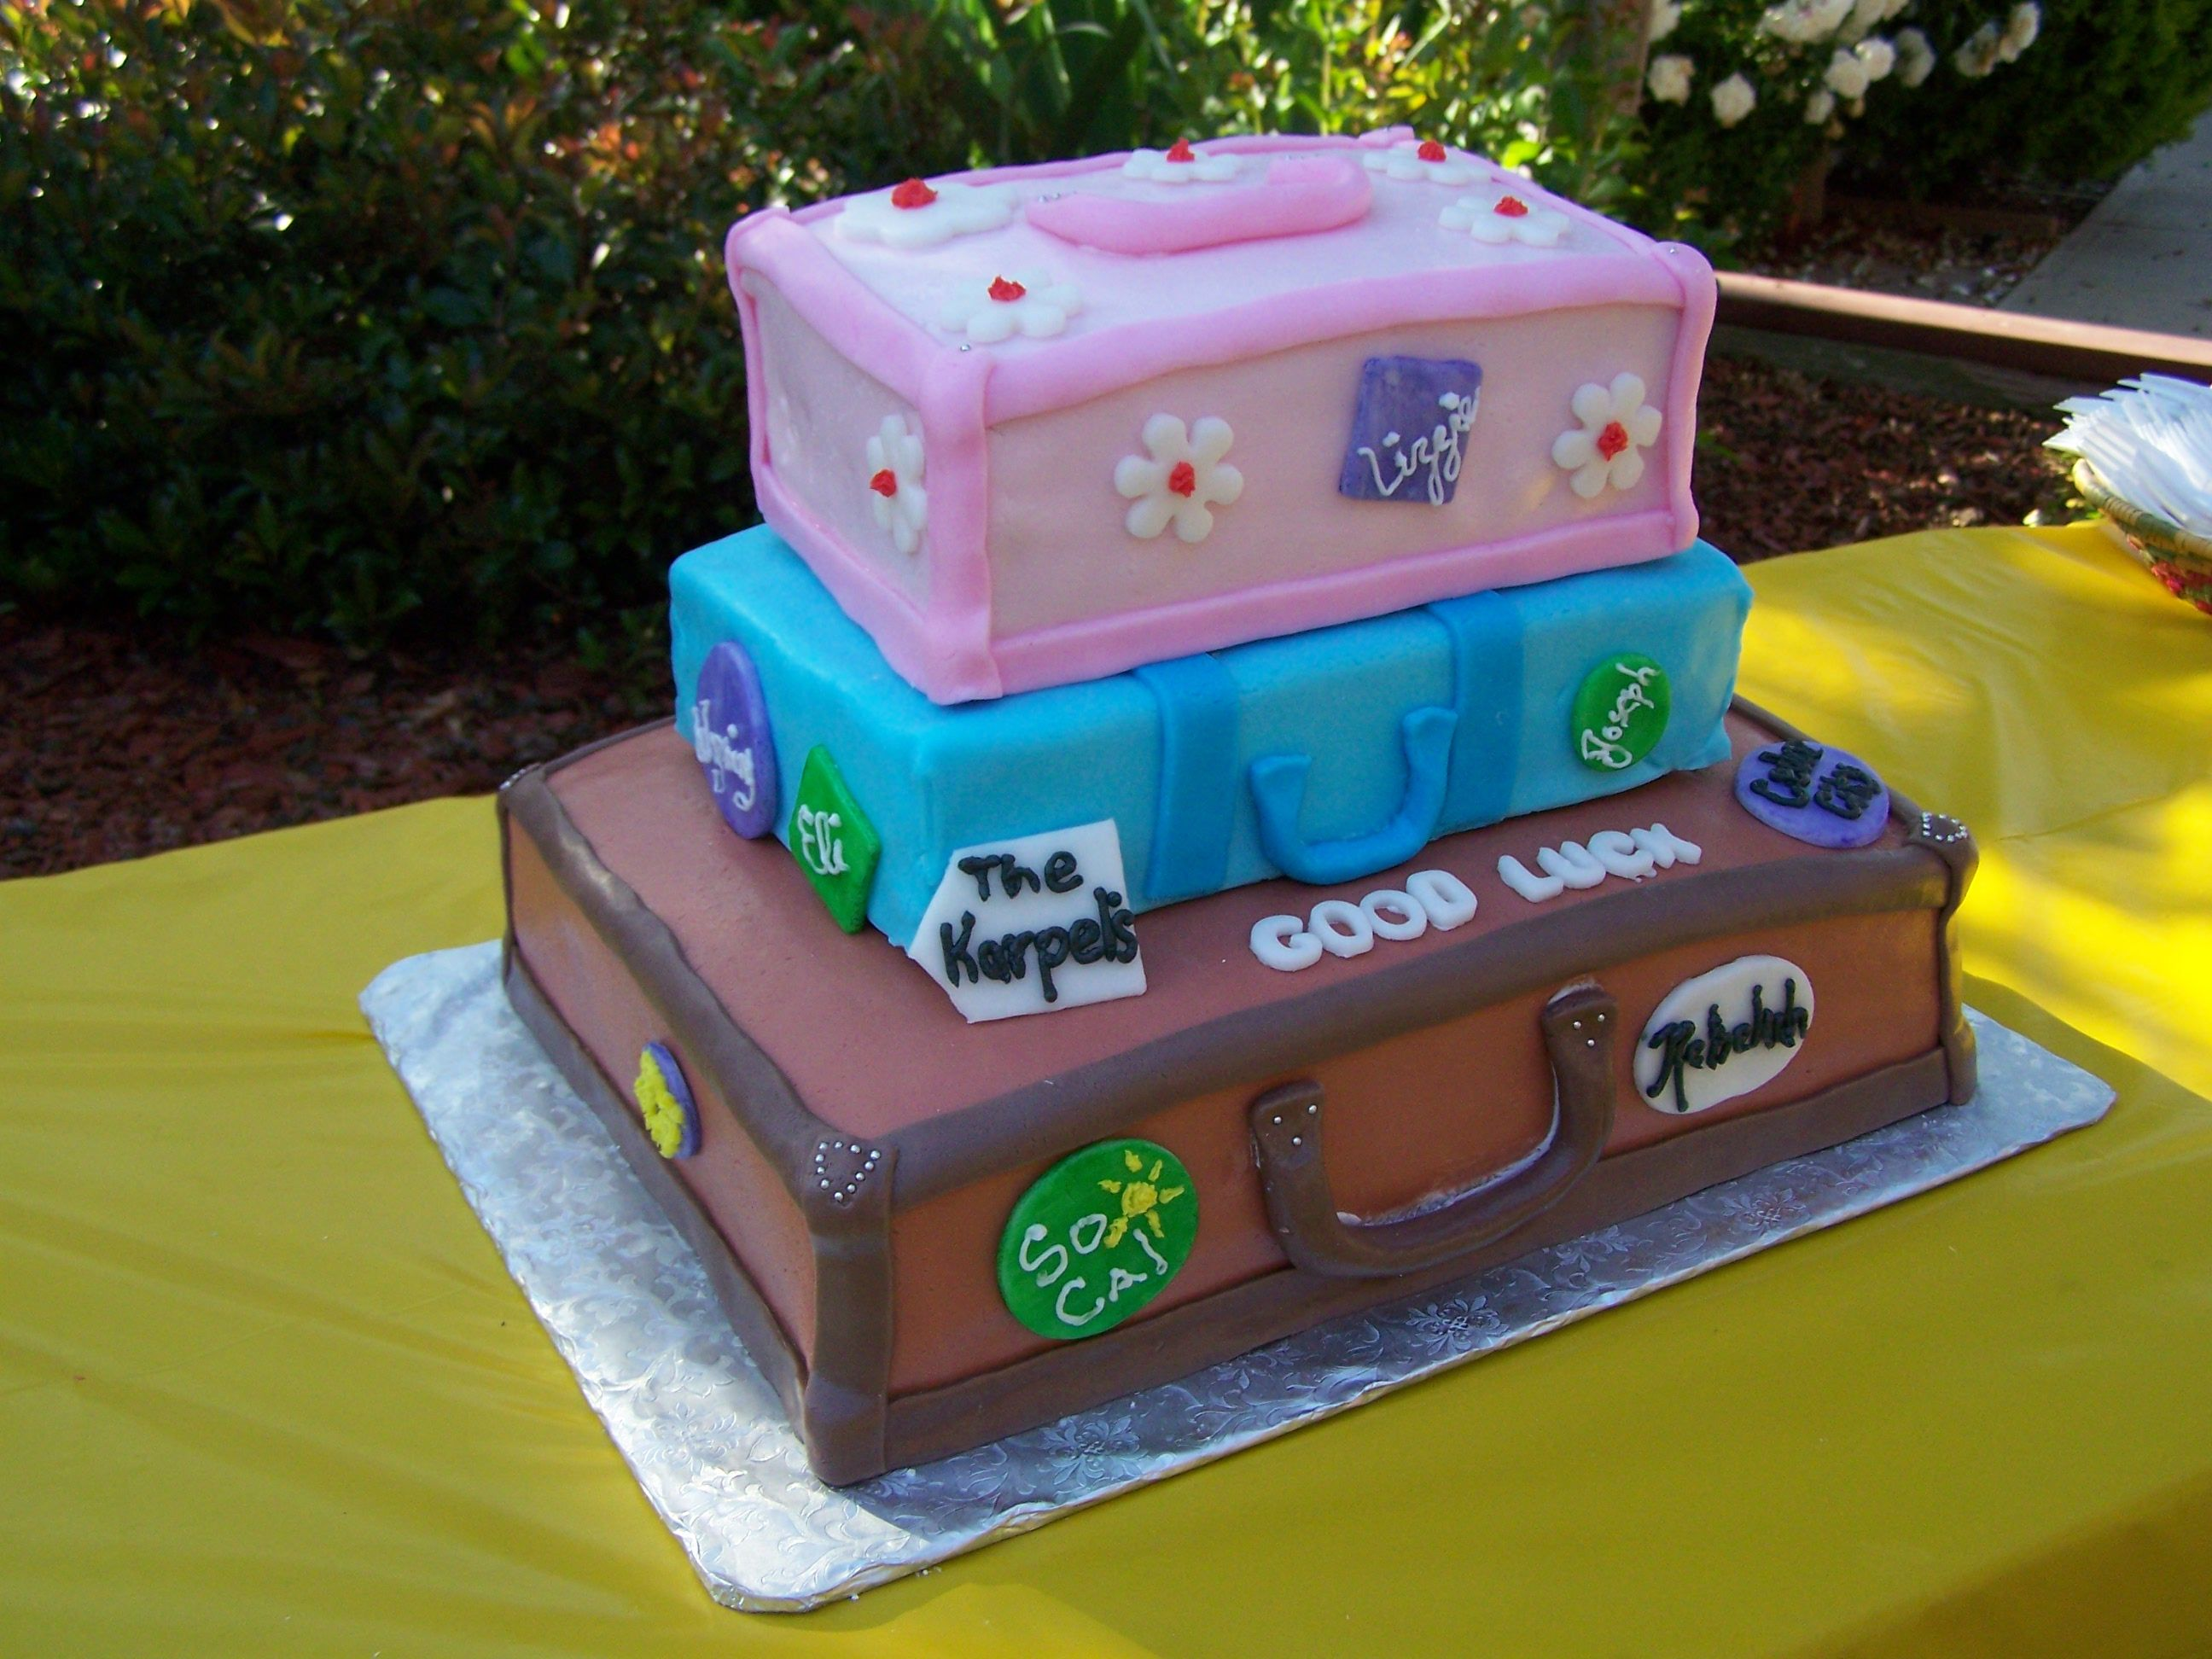 Suitcase Cake Going Away Party Ideas With Images Going Away